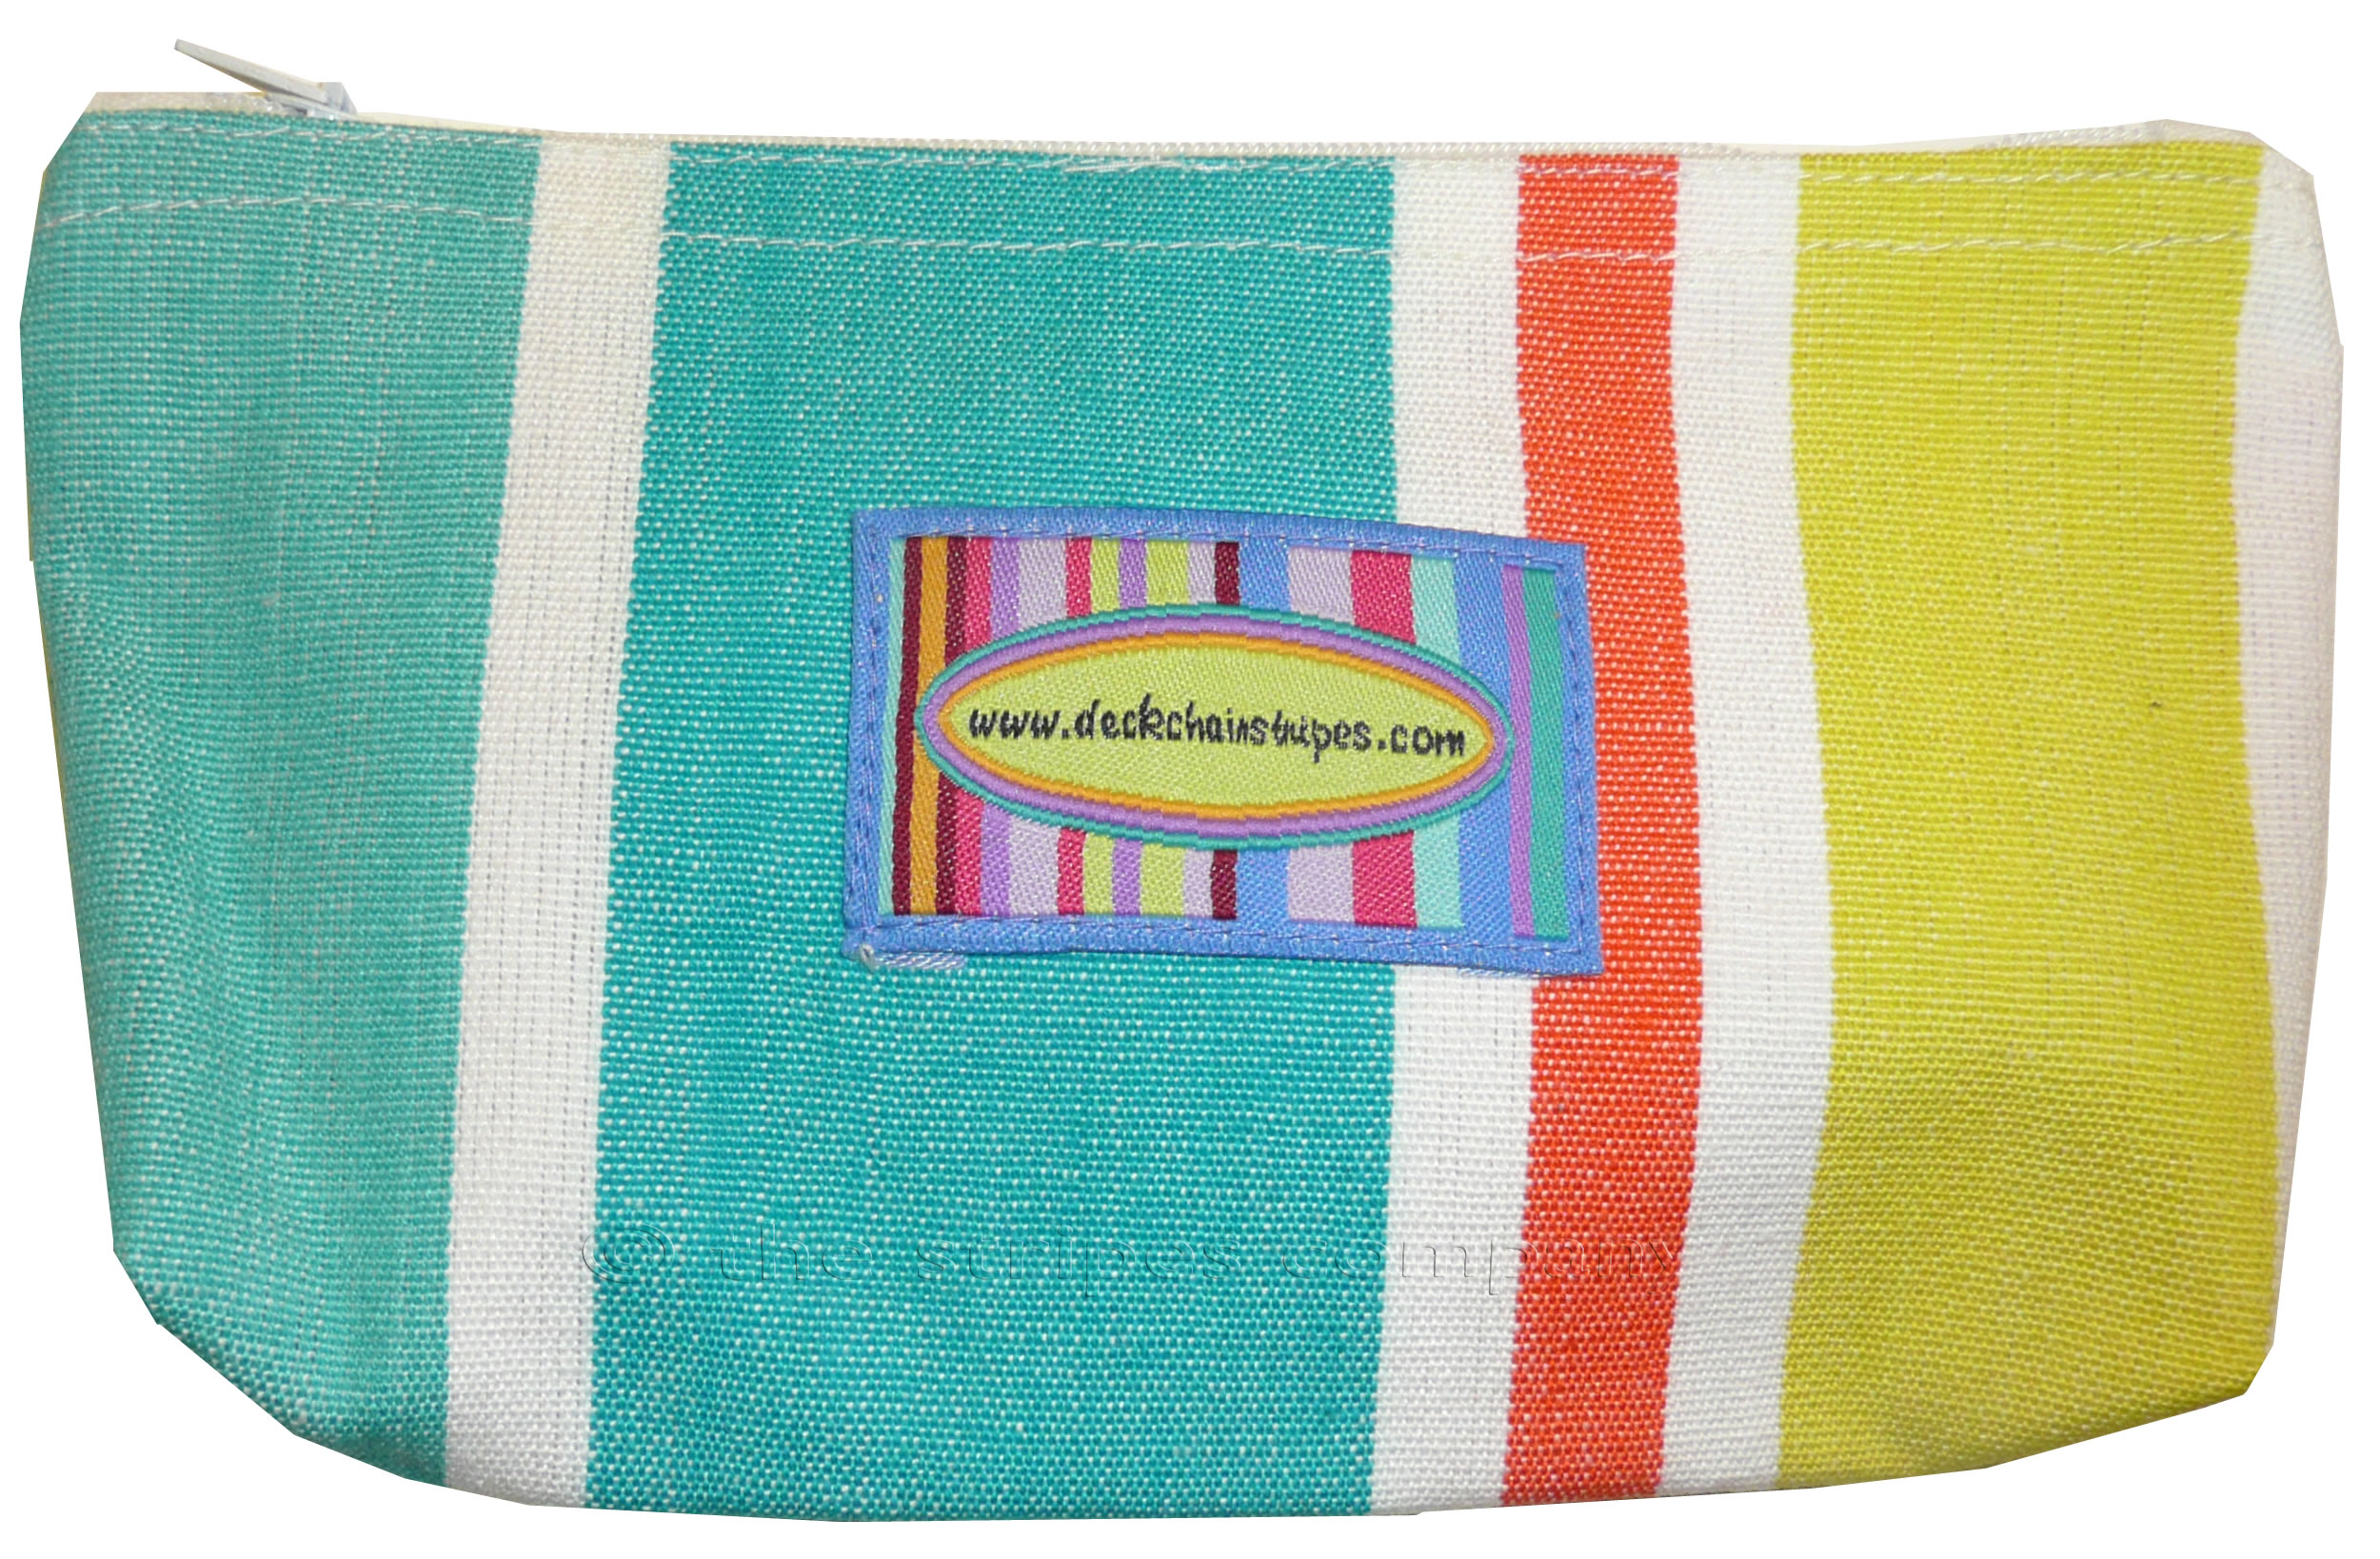 Blue Striped Purses | Small Zipped Bags | Cosmetic Bags Sudoku Stripes